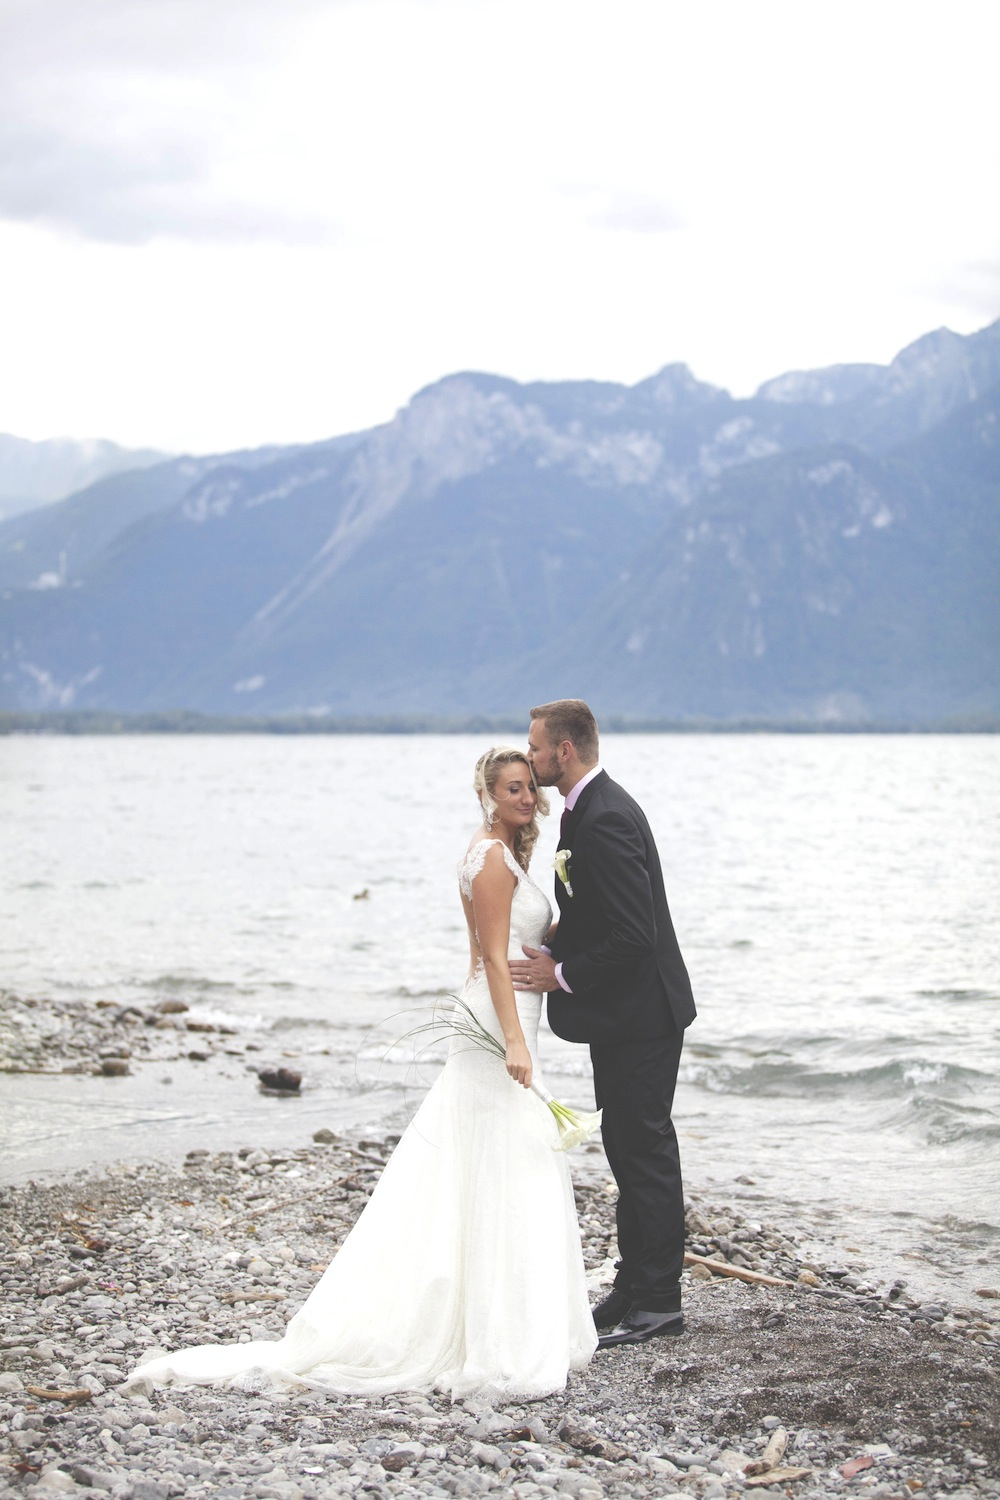 Photo session wedding by the lake